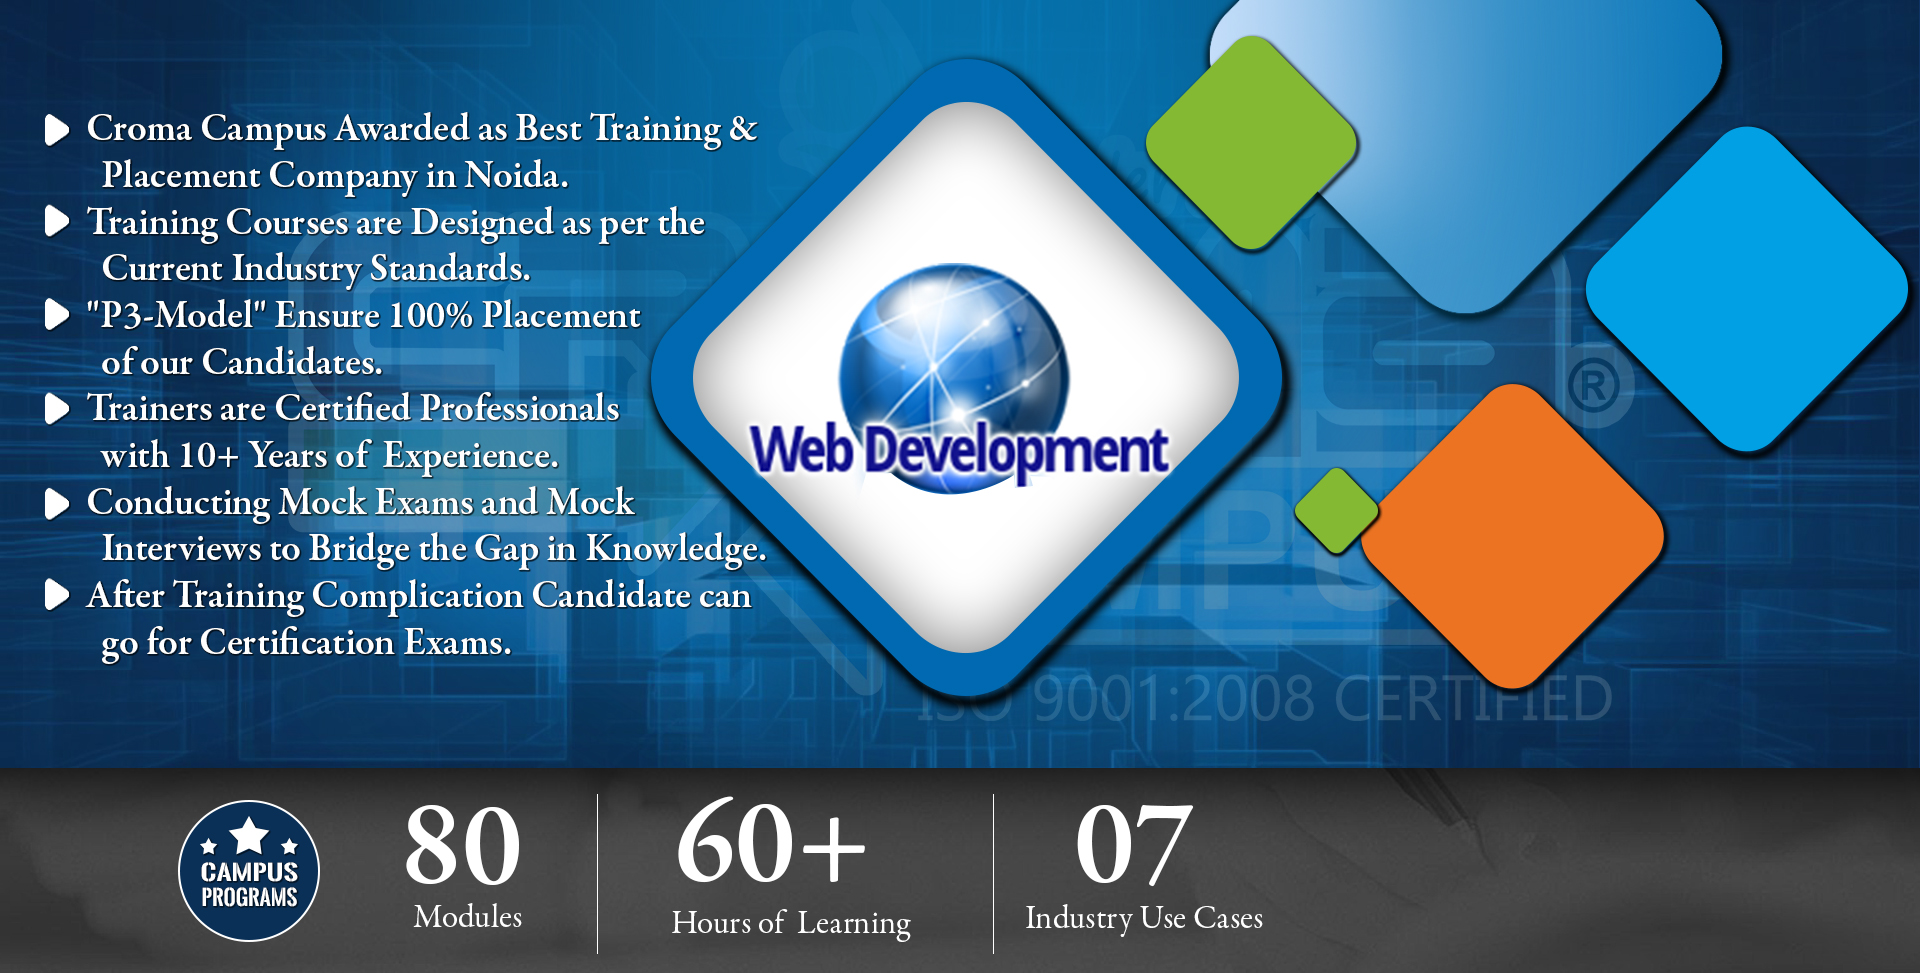 Web Development Training in Gurgaon - Croma Campus